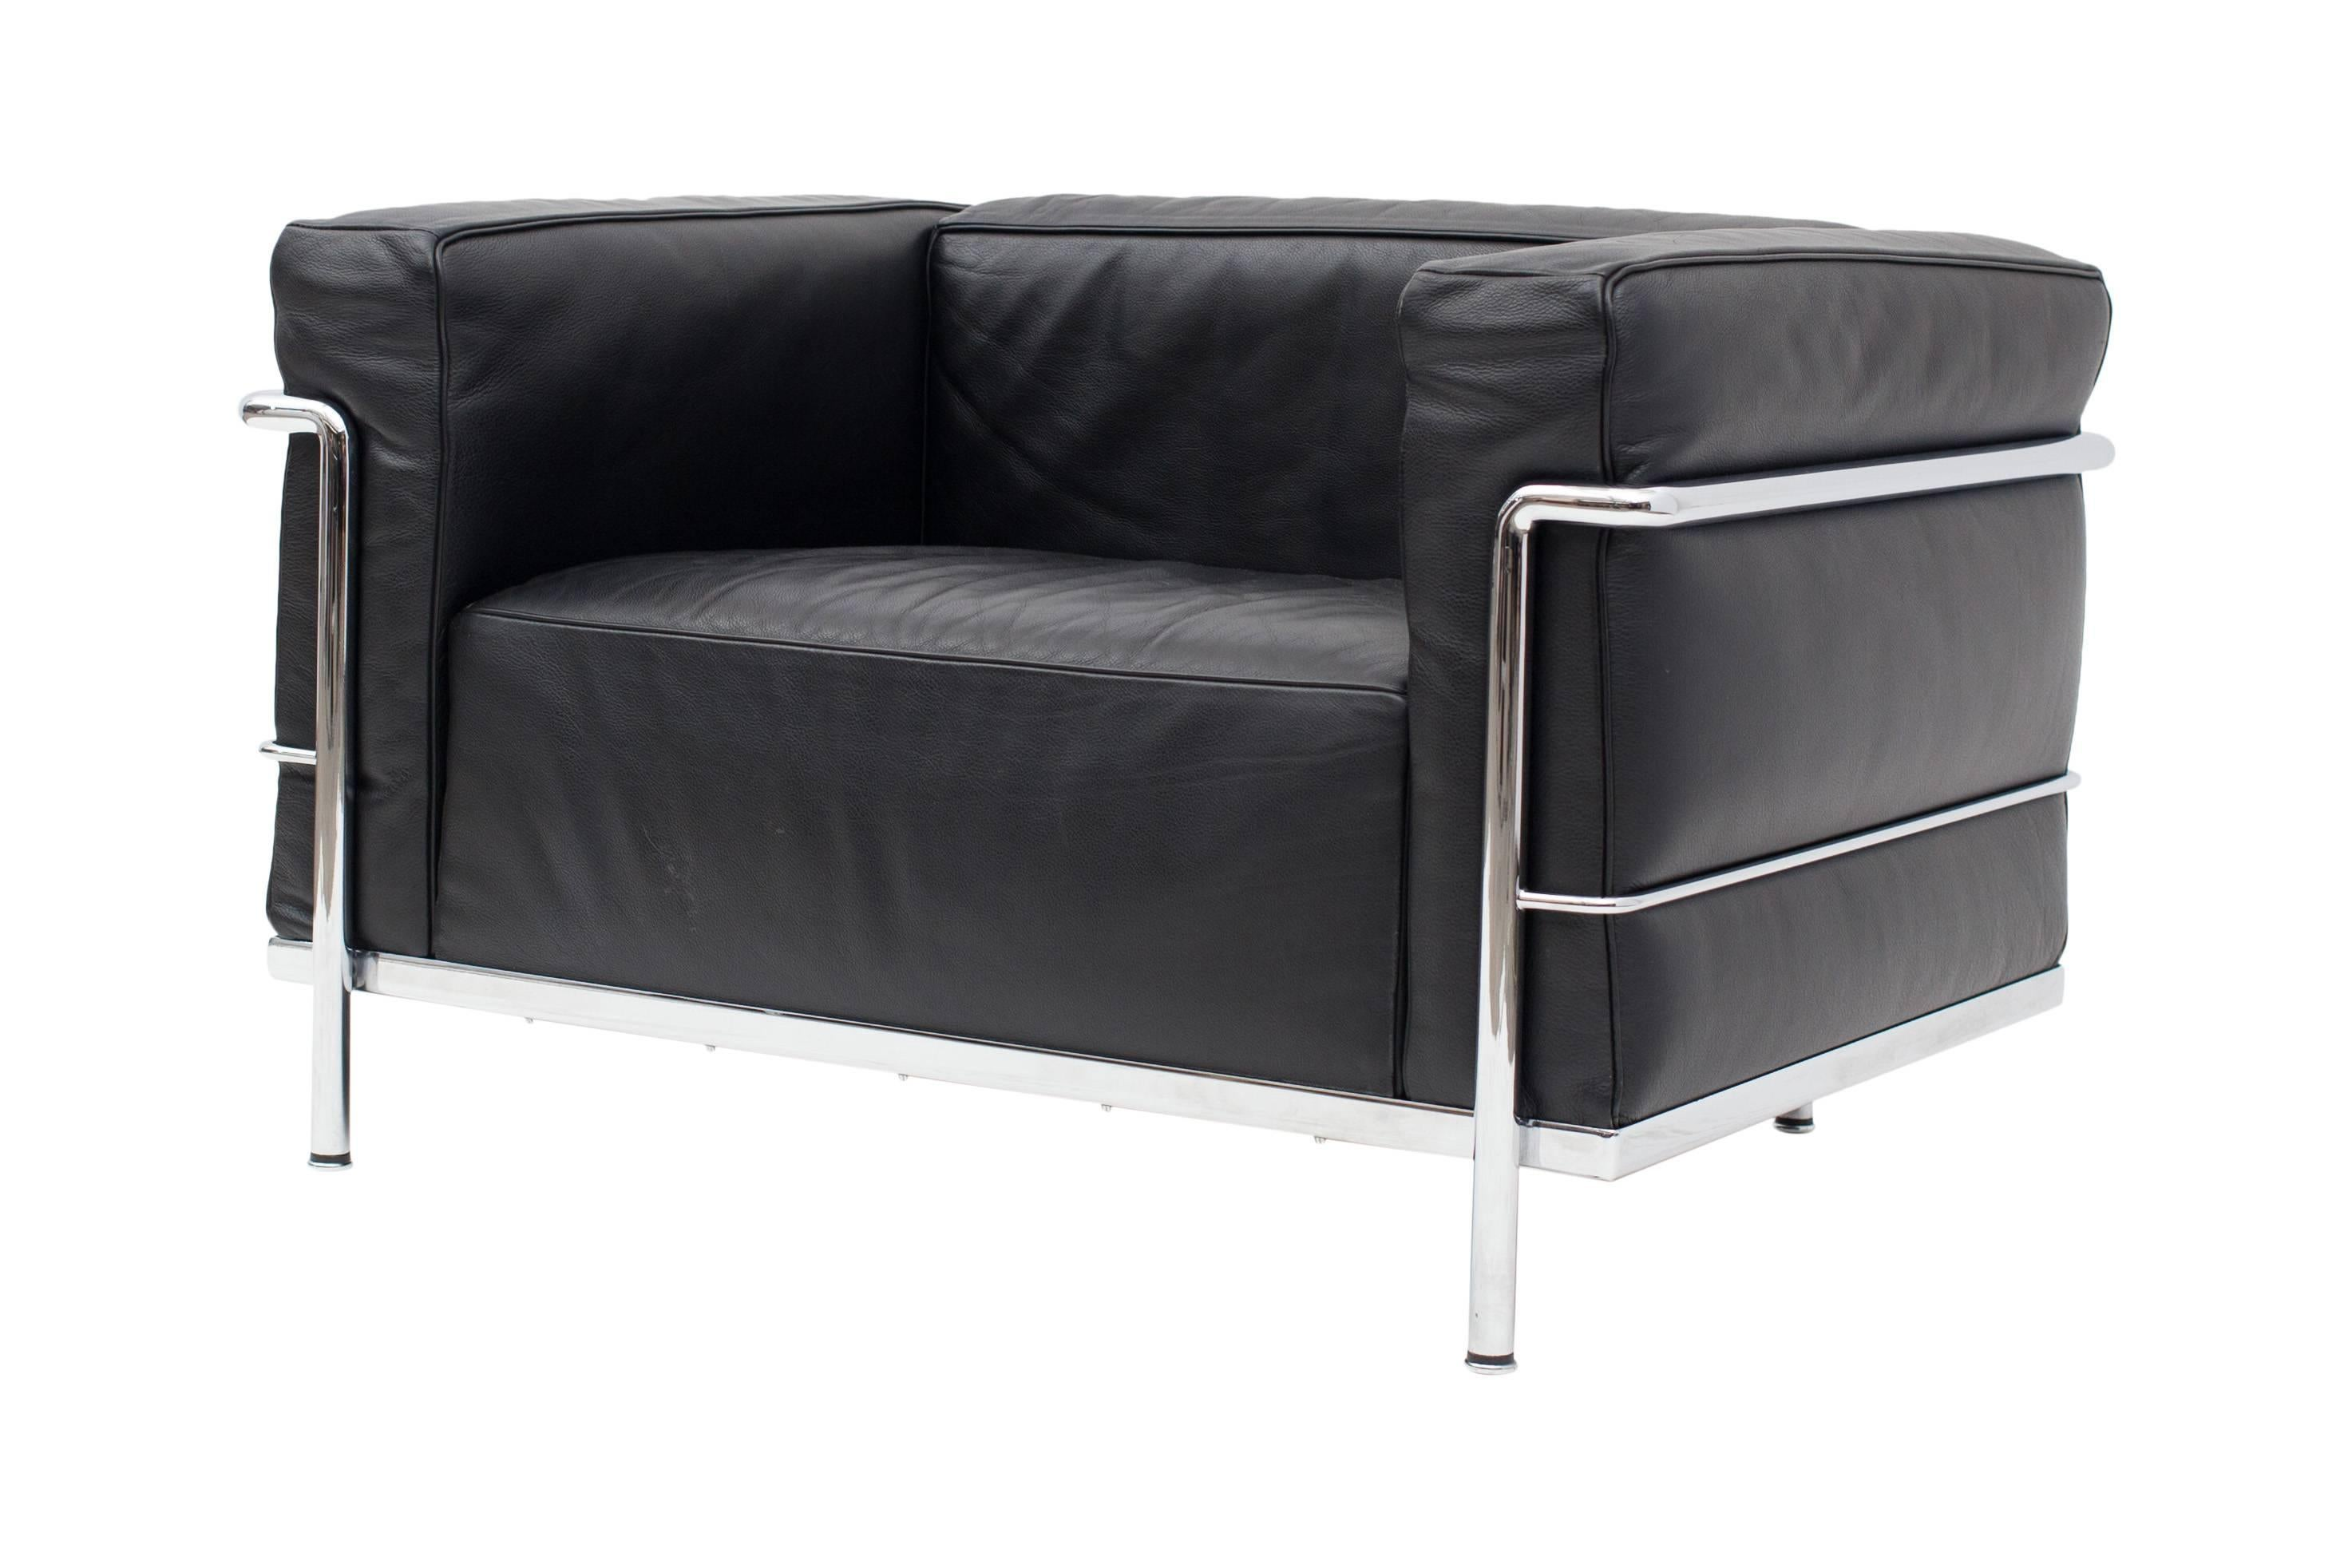 Le corbusier lc poltrona lounge chair black at stdibs